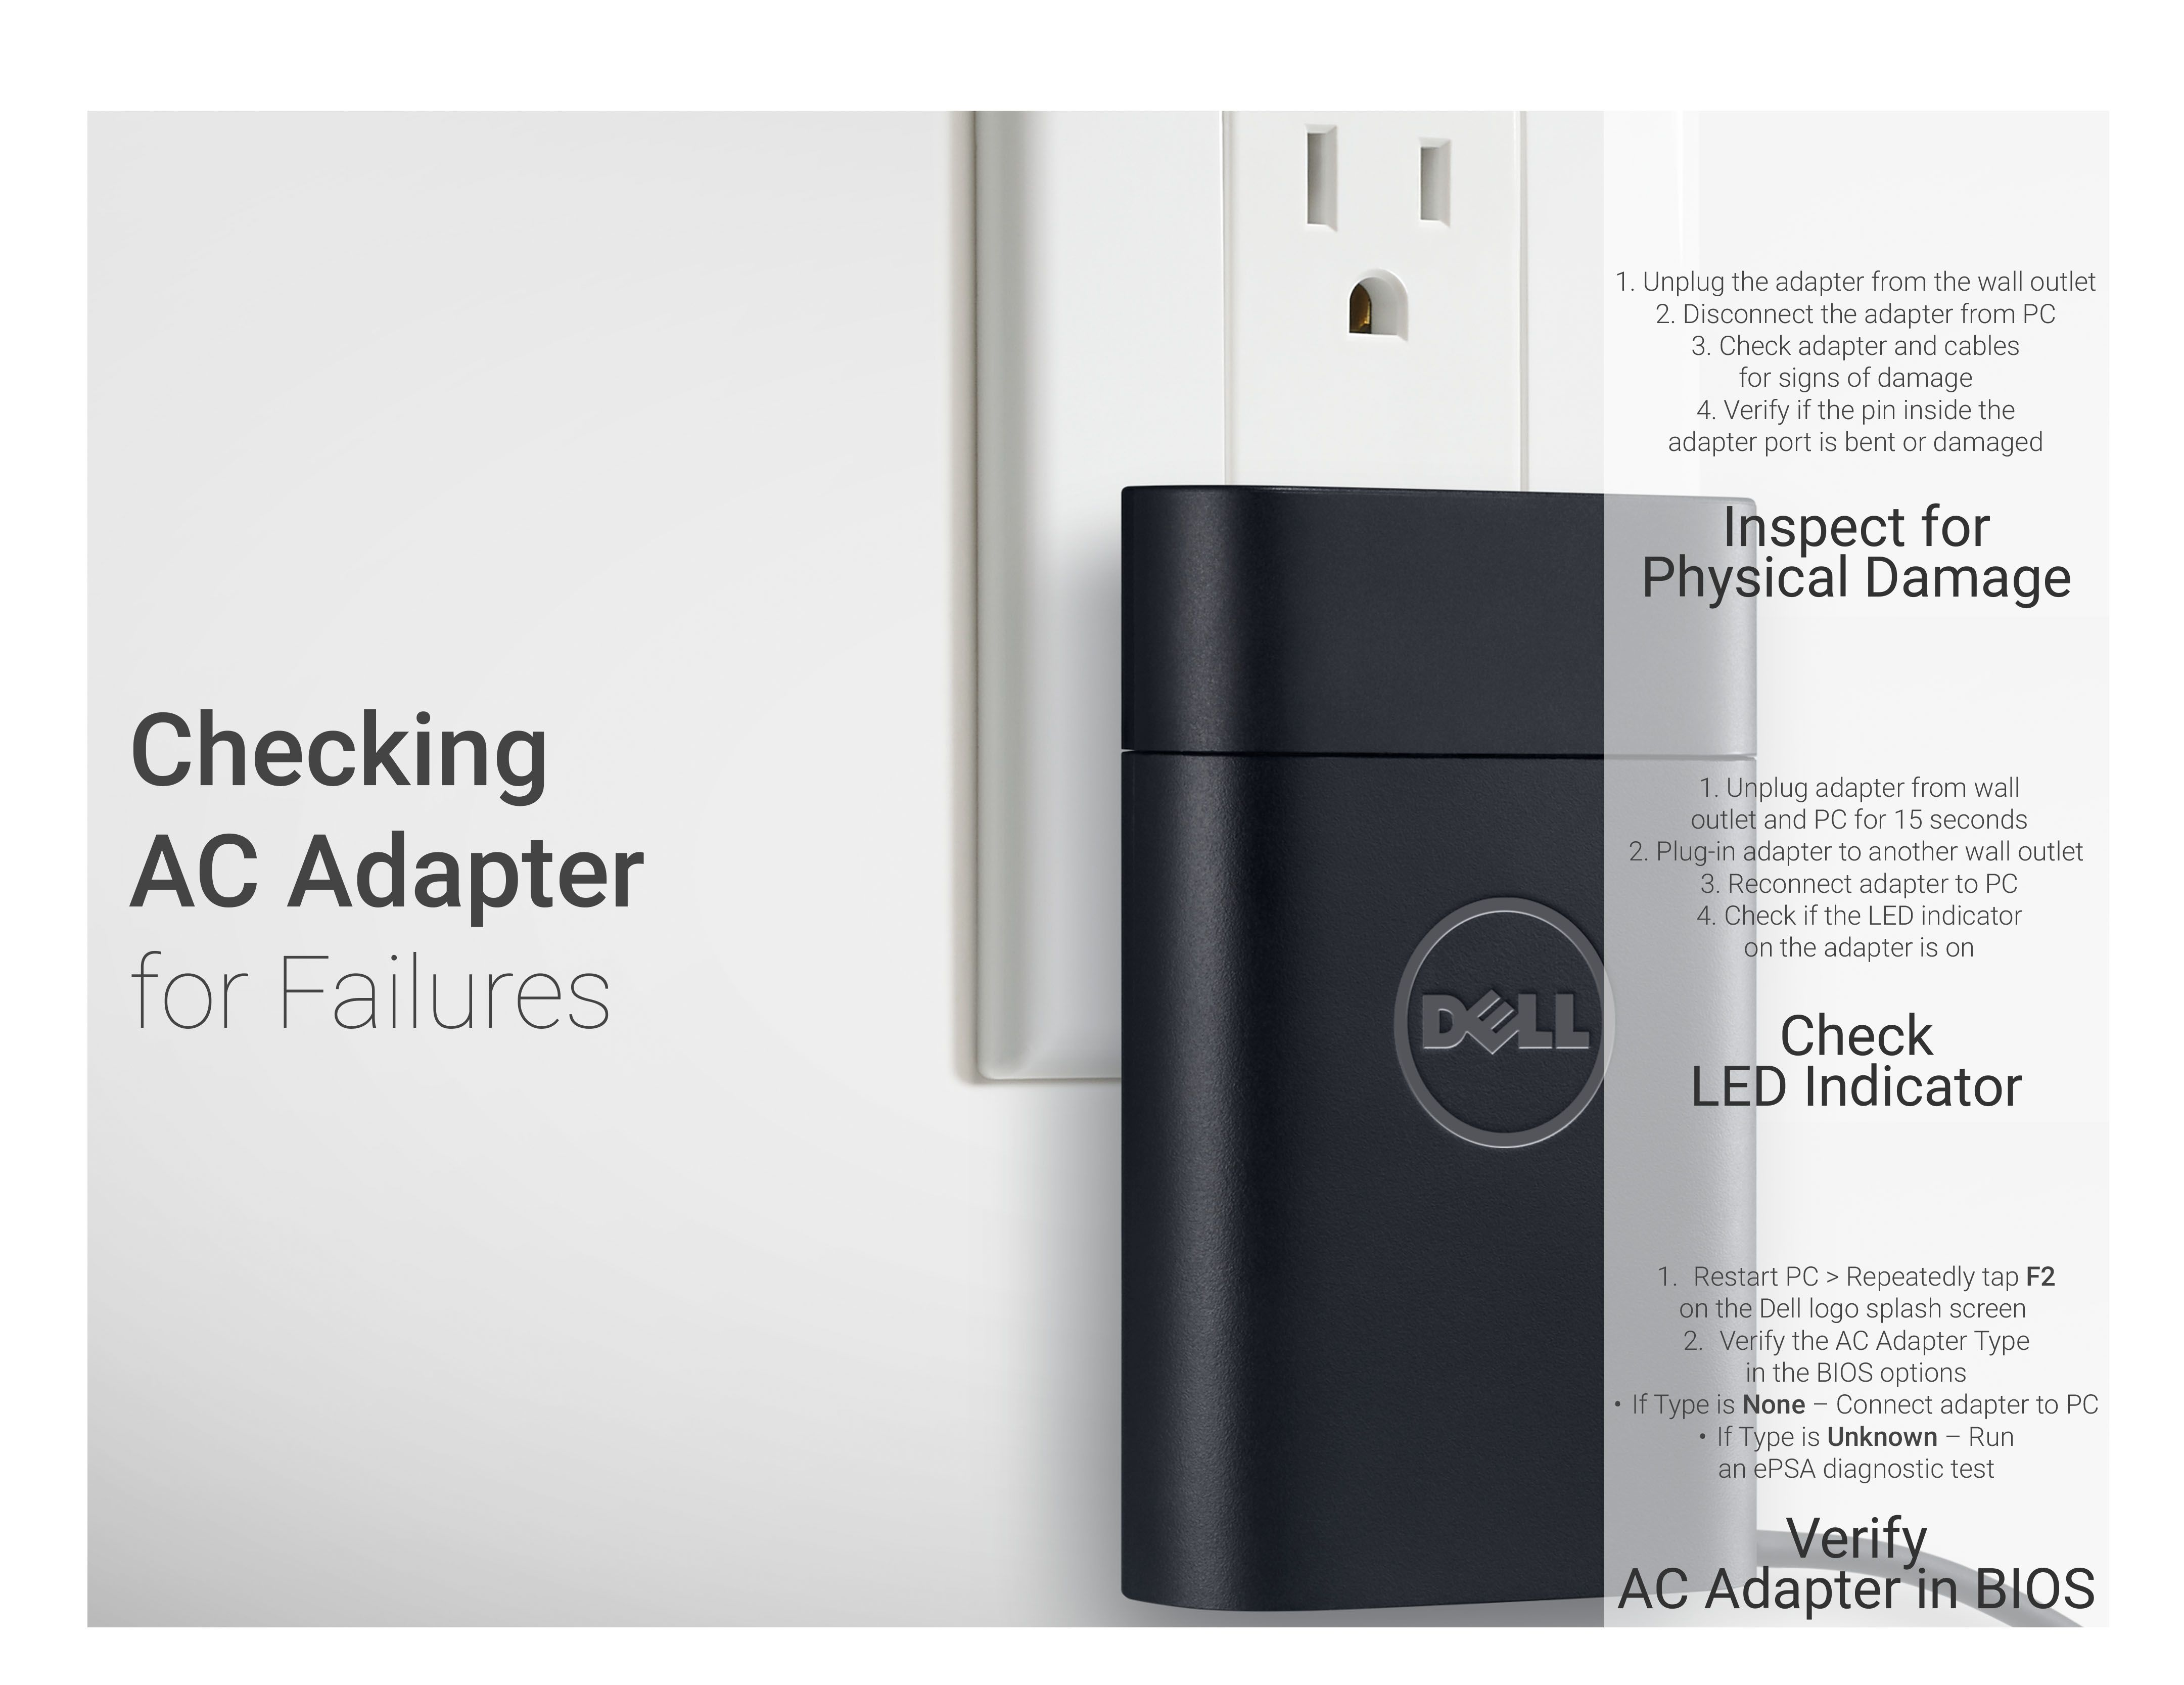 The AC Adapter helps provide the power to your laptop and mobile